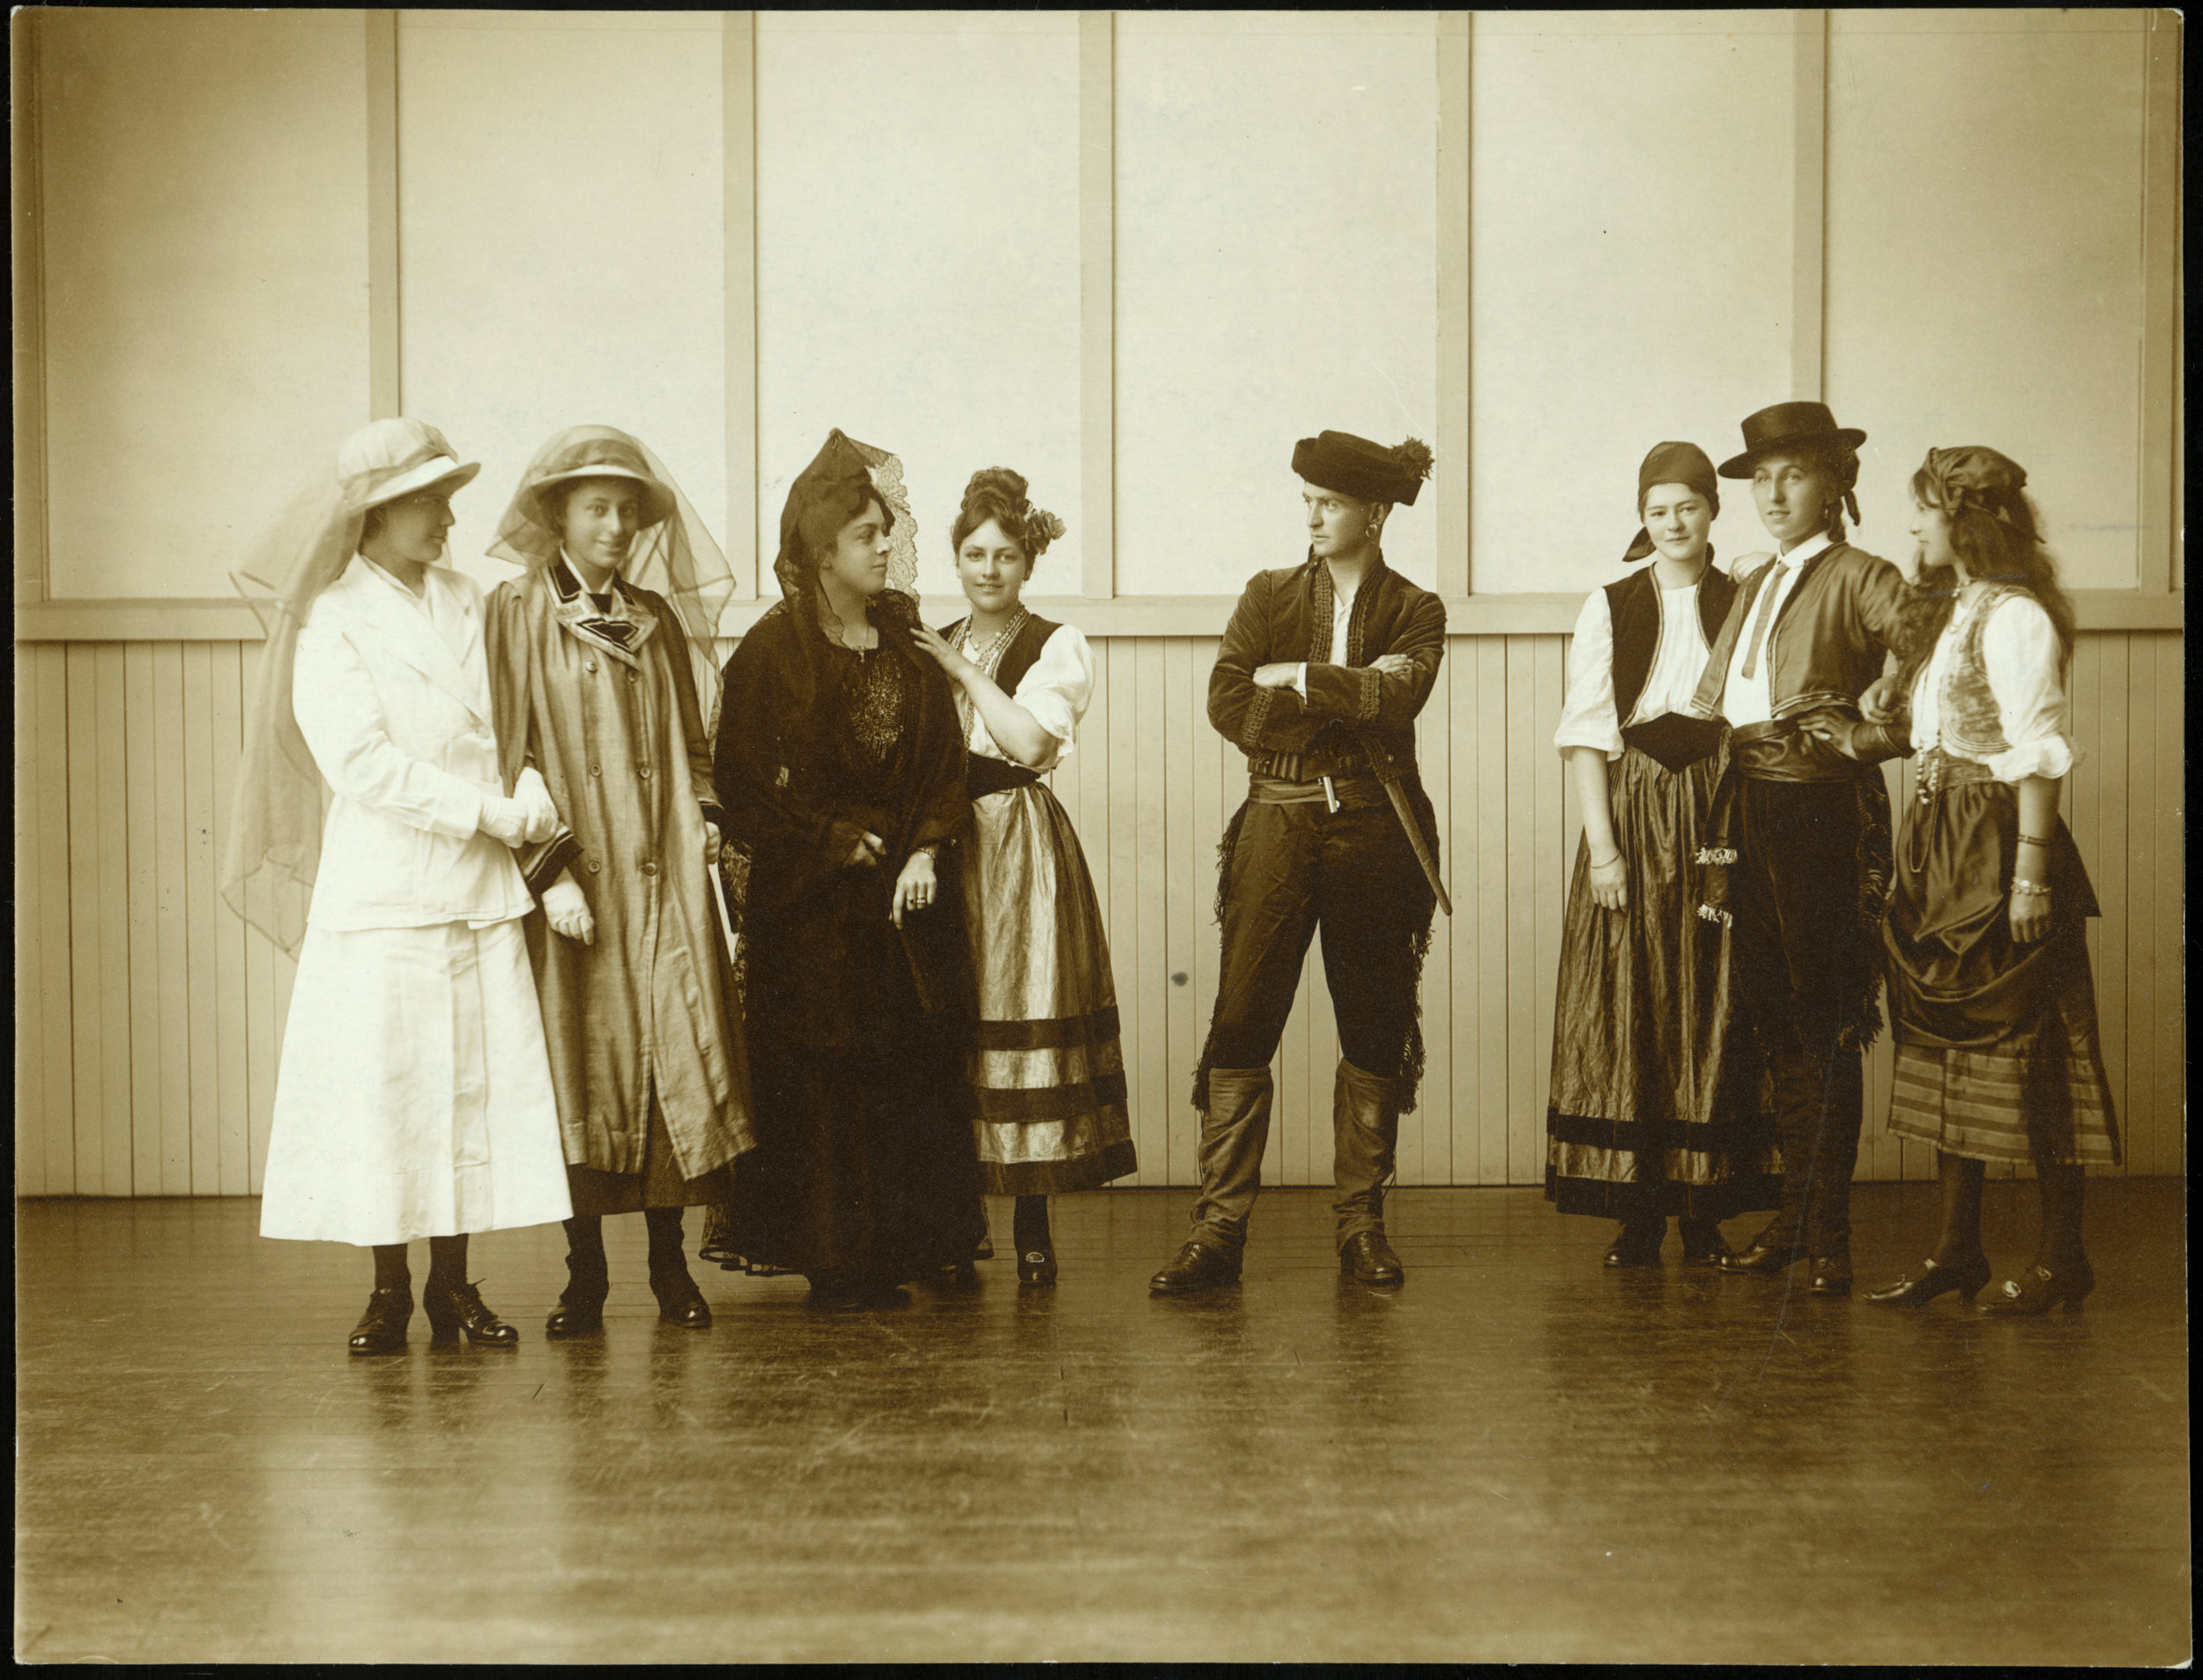 From left: Esther Armstrong, Betty Joske, Nita McHardy, Phyllis Goodson, Mr Stephens (singing instruc[tor]), Jessie Ritchie, Glory Svenson [?], Dorothy Levin. See http://digitallibrary.pncc.govt.nz/ for more historic photographs of Palmerston North schools.